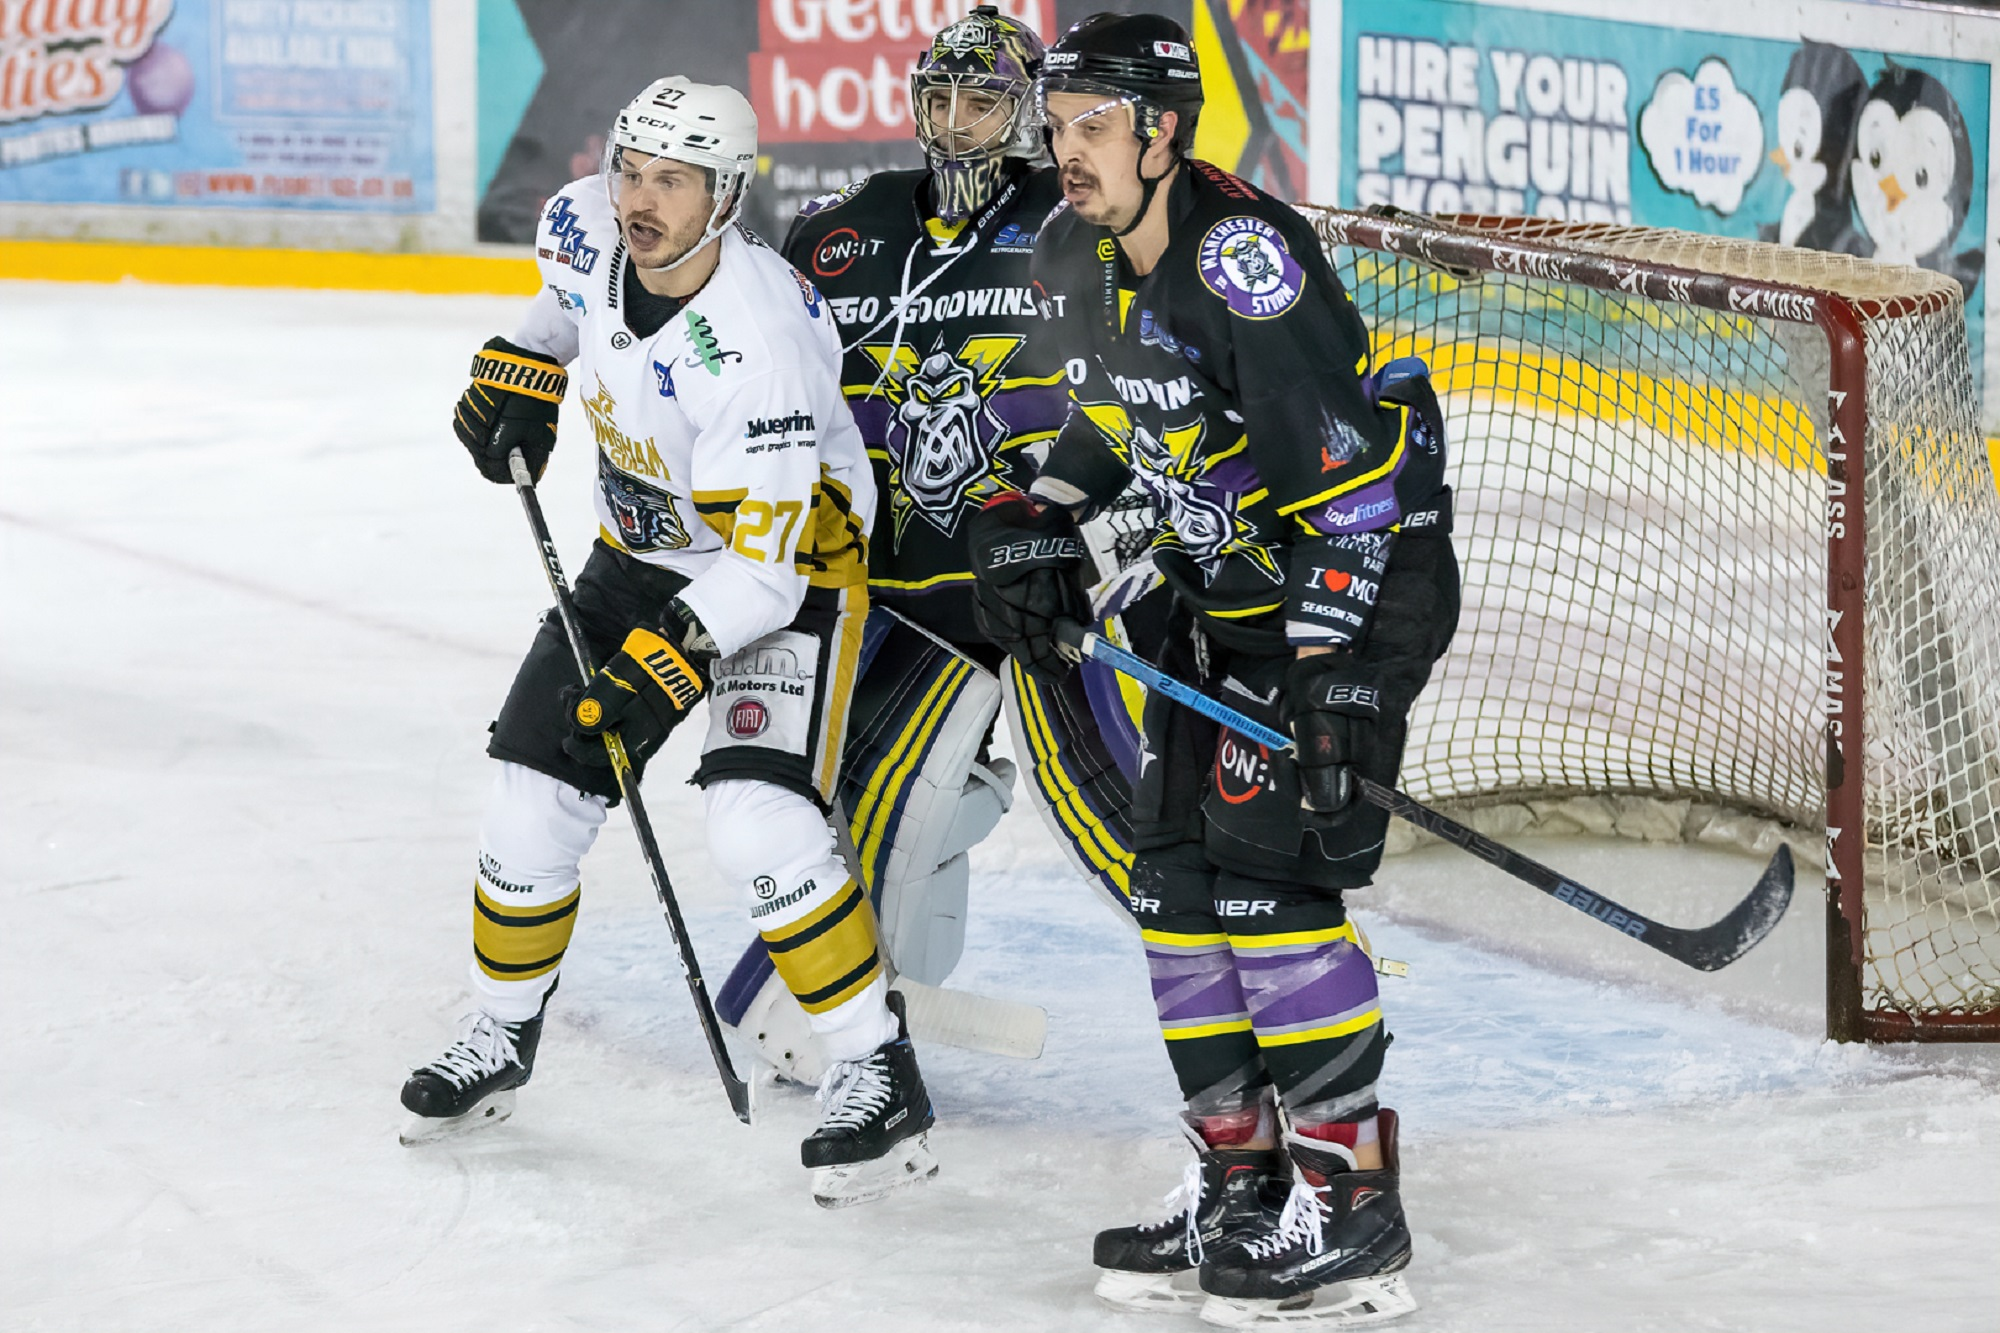 Panthers at Storm: Game day! - 06/01/19 Top Image